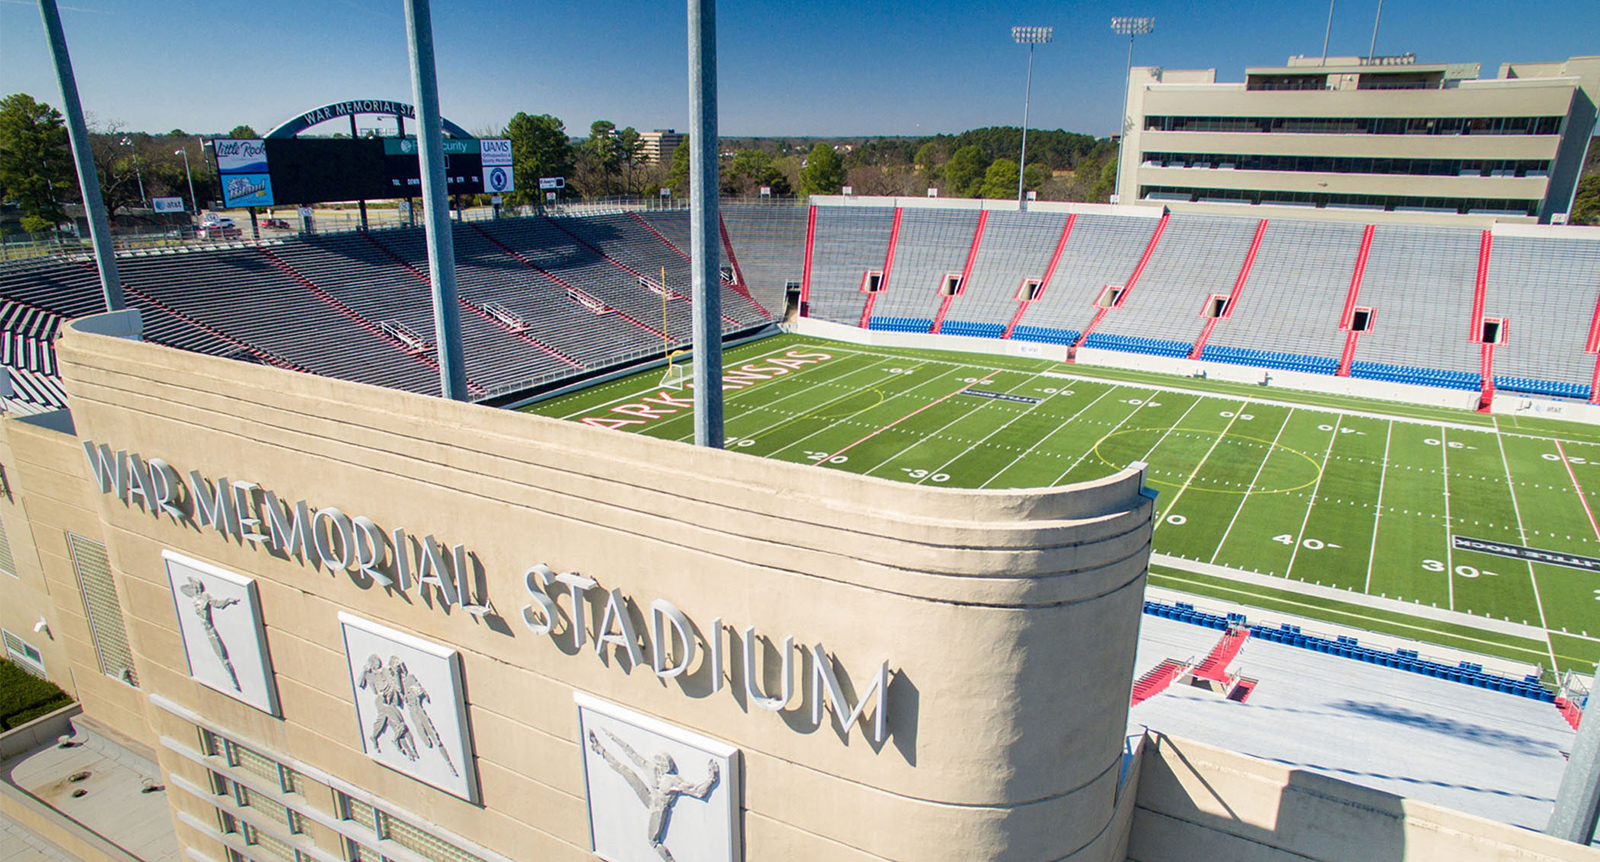 Image of War Memorial Stadium, Little Rock, Arkansas